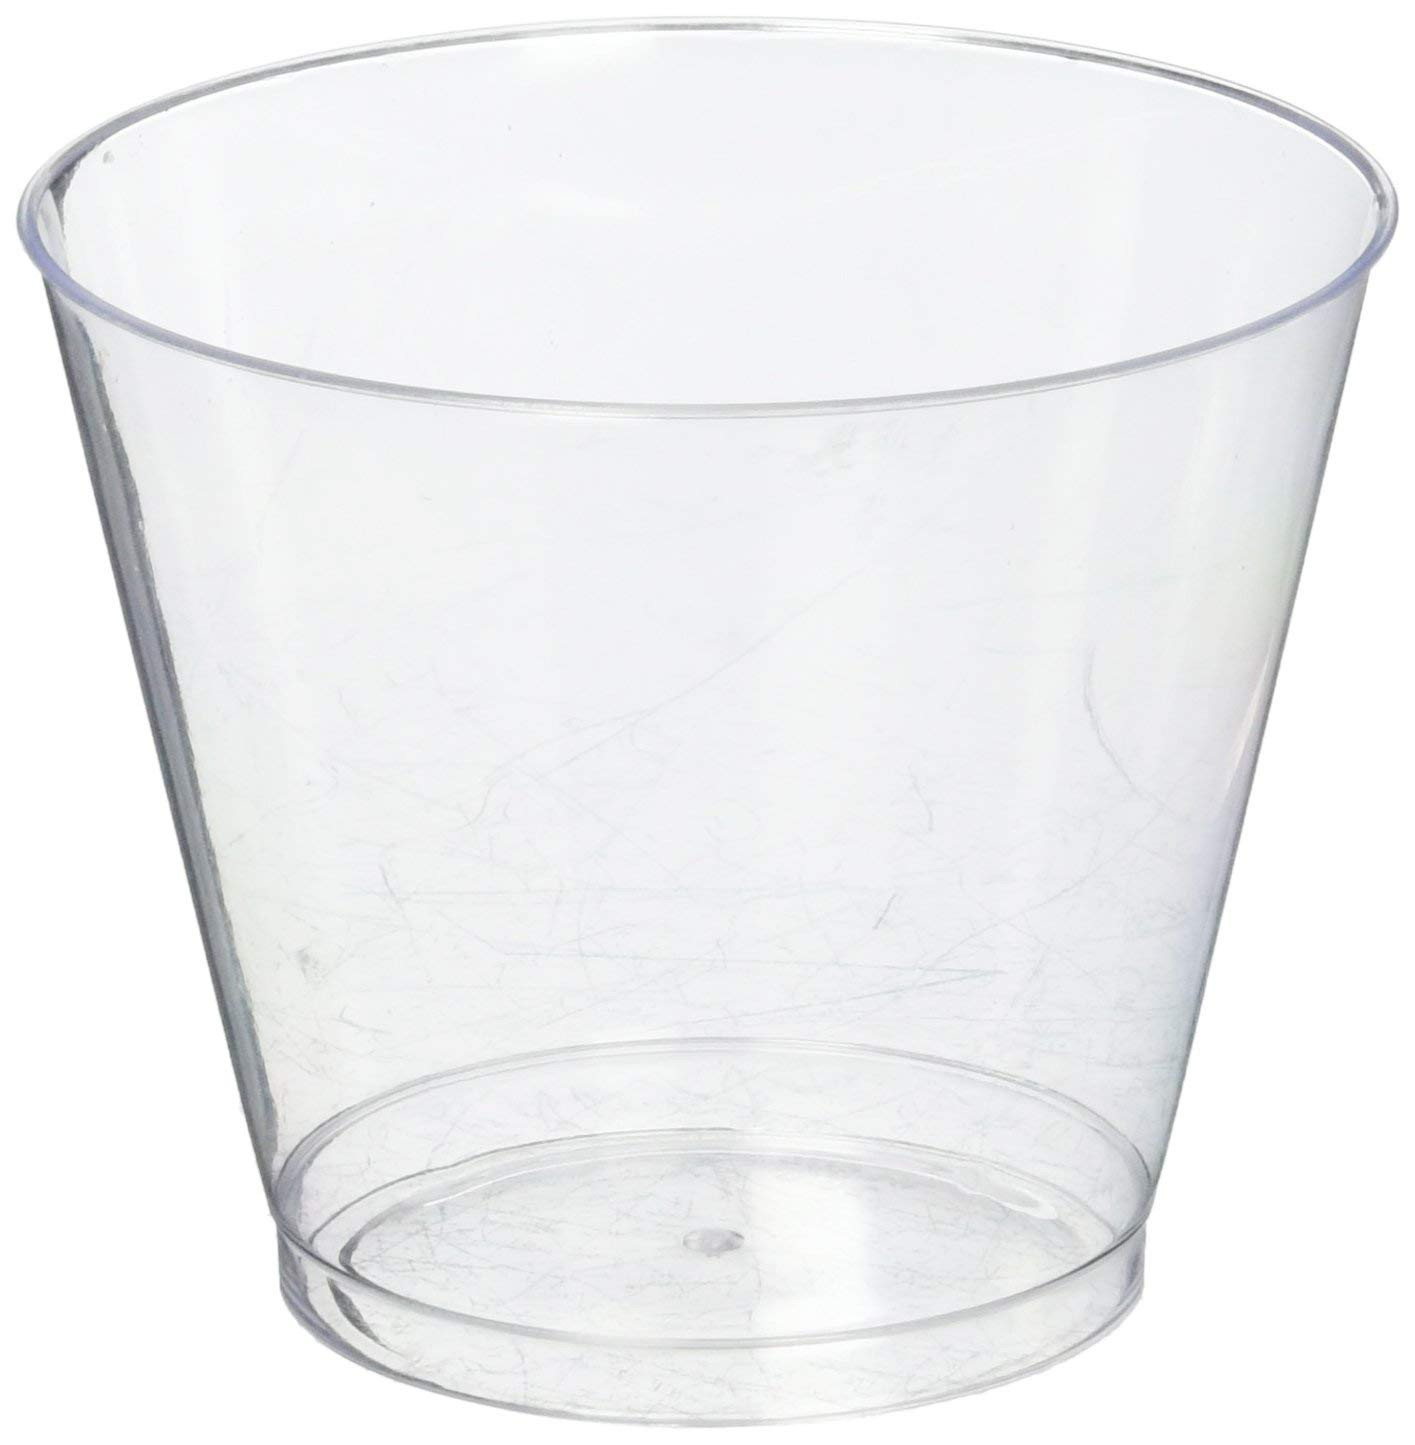 clear plastic cylinder vases bulk of amazon com hard plastic tumblers 9 oz party cups old fashioned for amazon com hard plastic tumblers 9 oz party cups old fashioned glass 100 count drinking glasses crystal clear kitchen dining